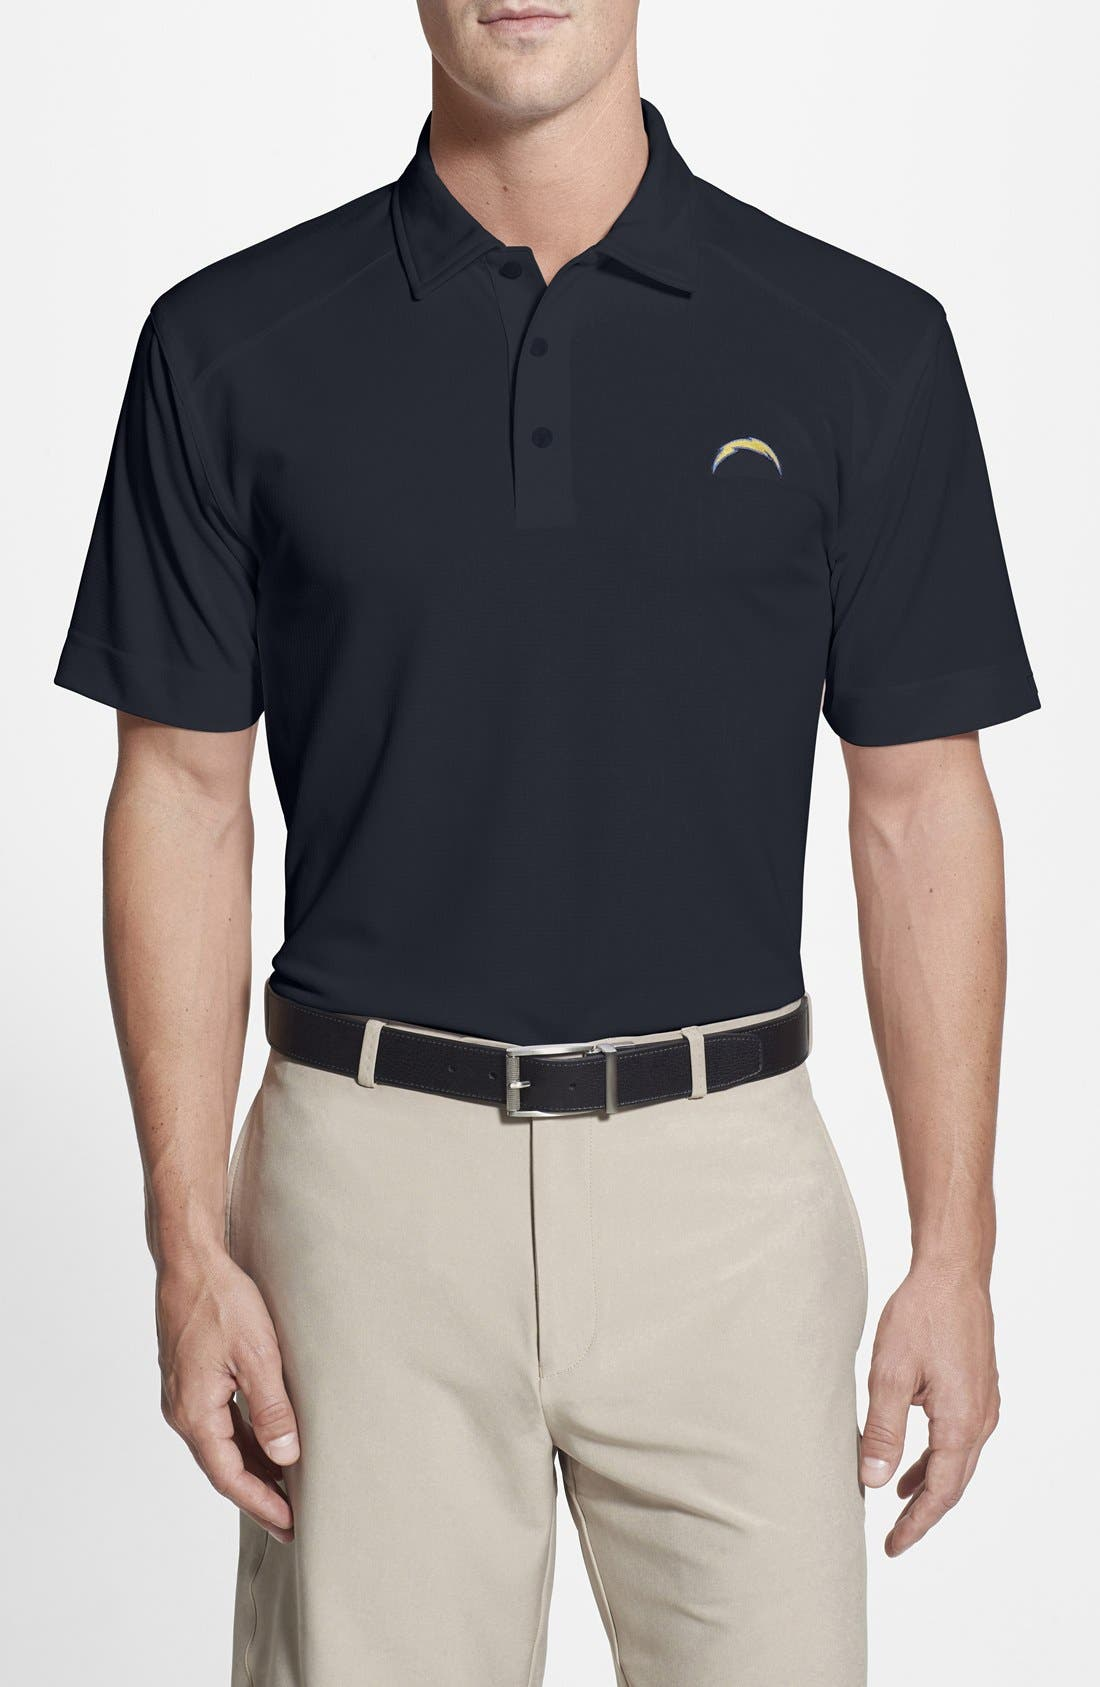 San Diego Chargers - Genre DryTec Moisture Wicking Polo,                             Main thumbnail 1, color,                             Navy Blue